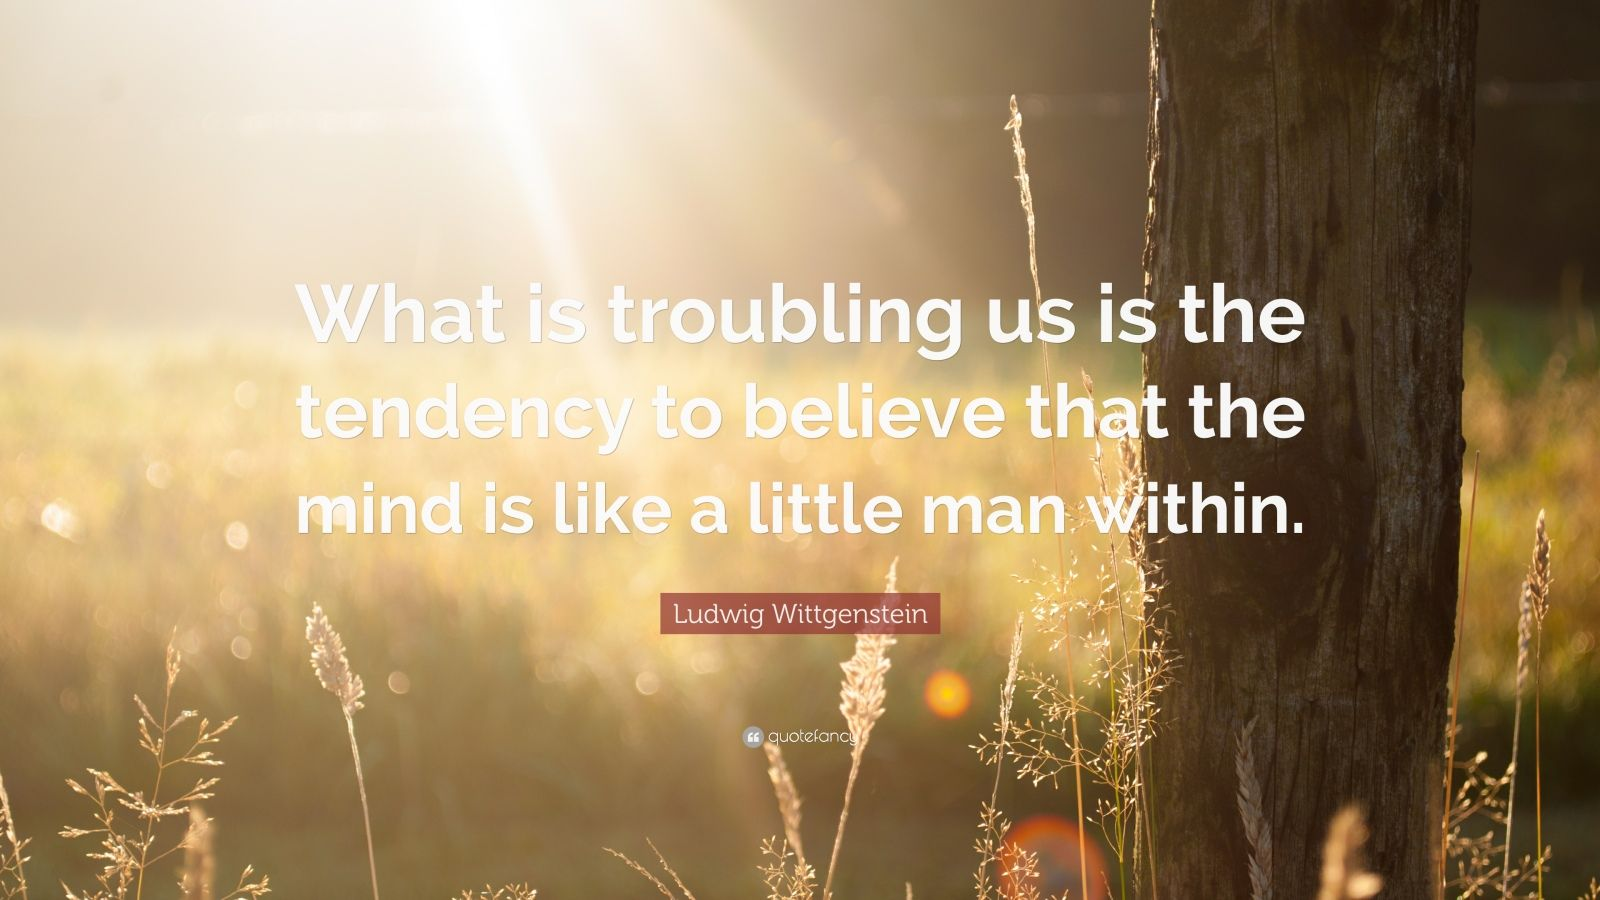 """Ludwig Wittgenstein Quote: """"What is troubling us is the tendency to believe that the mind is like a little man within."""""""